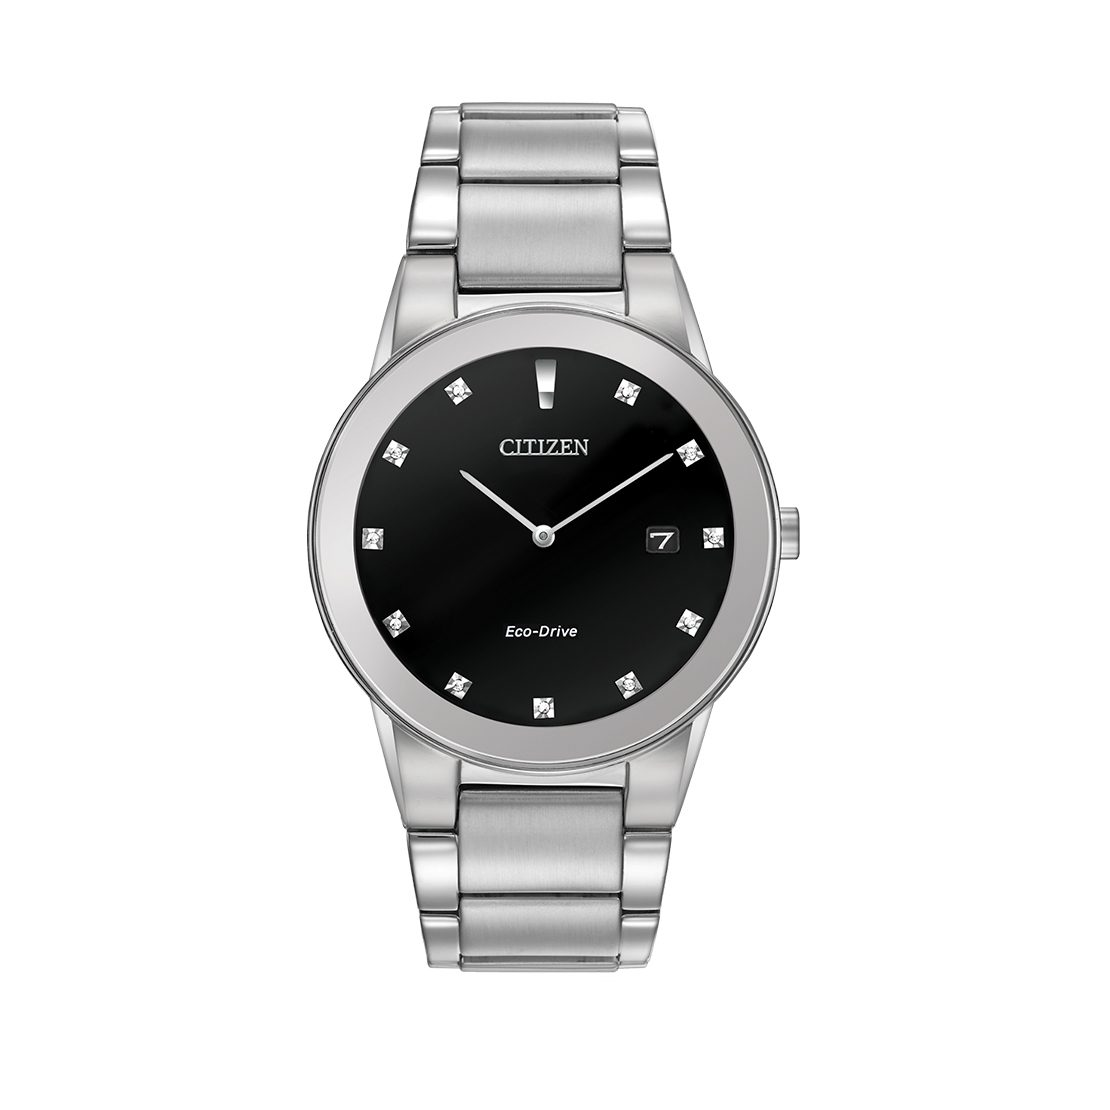 Men's Citizen Watch stainless steel with black dial